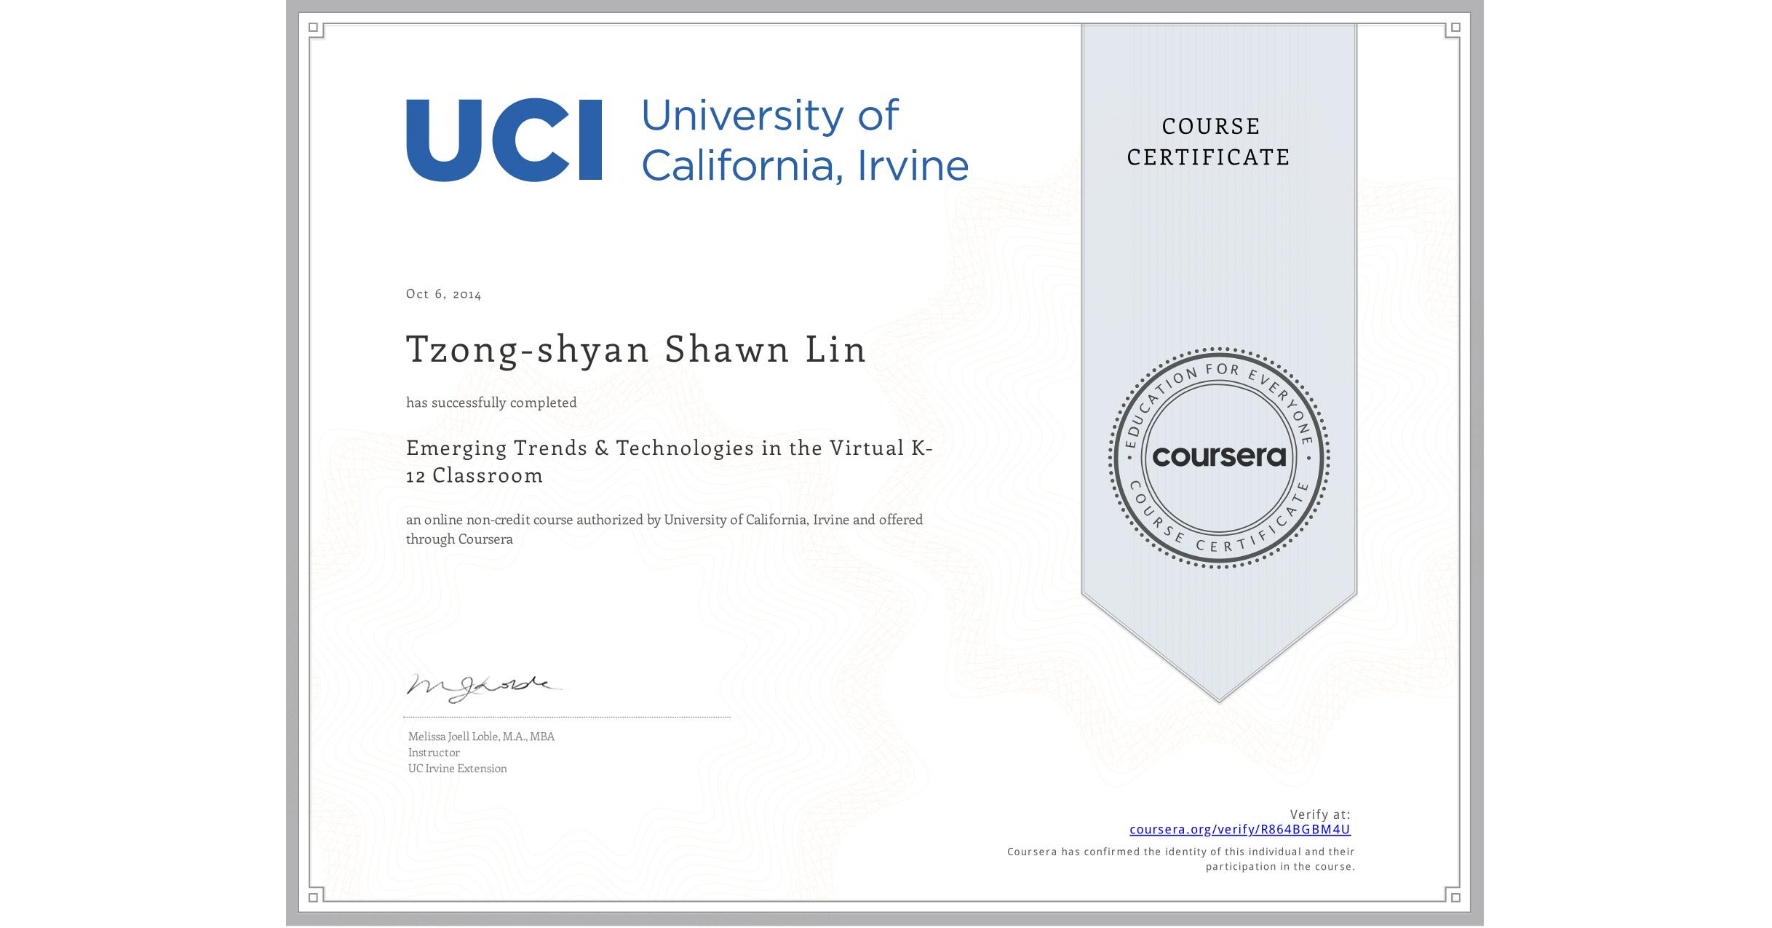 View certificate for Tzong-shyan Shawn Lin, Emerging Trends & Technologies in the Virtual K-12 Classroom, an online non-credit course authorized by University of California, Irvine and offered through Coursera